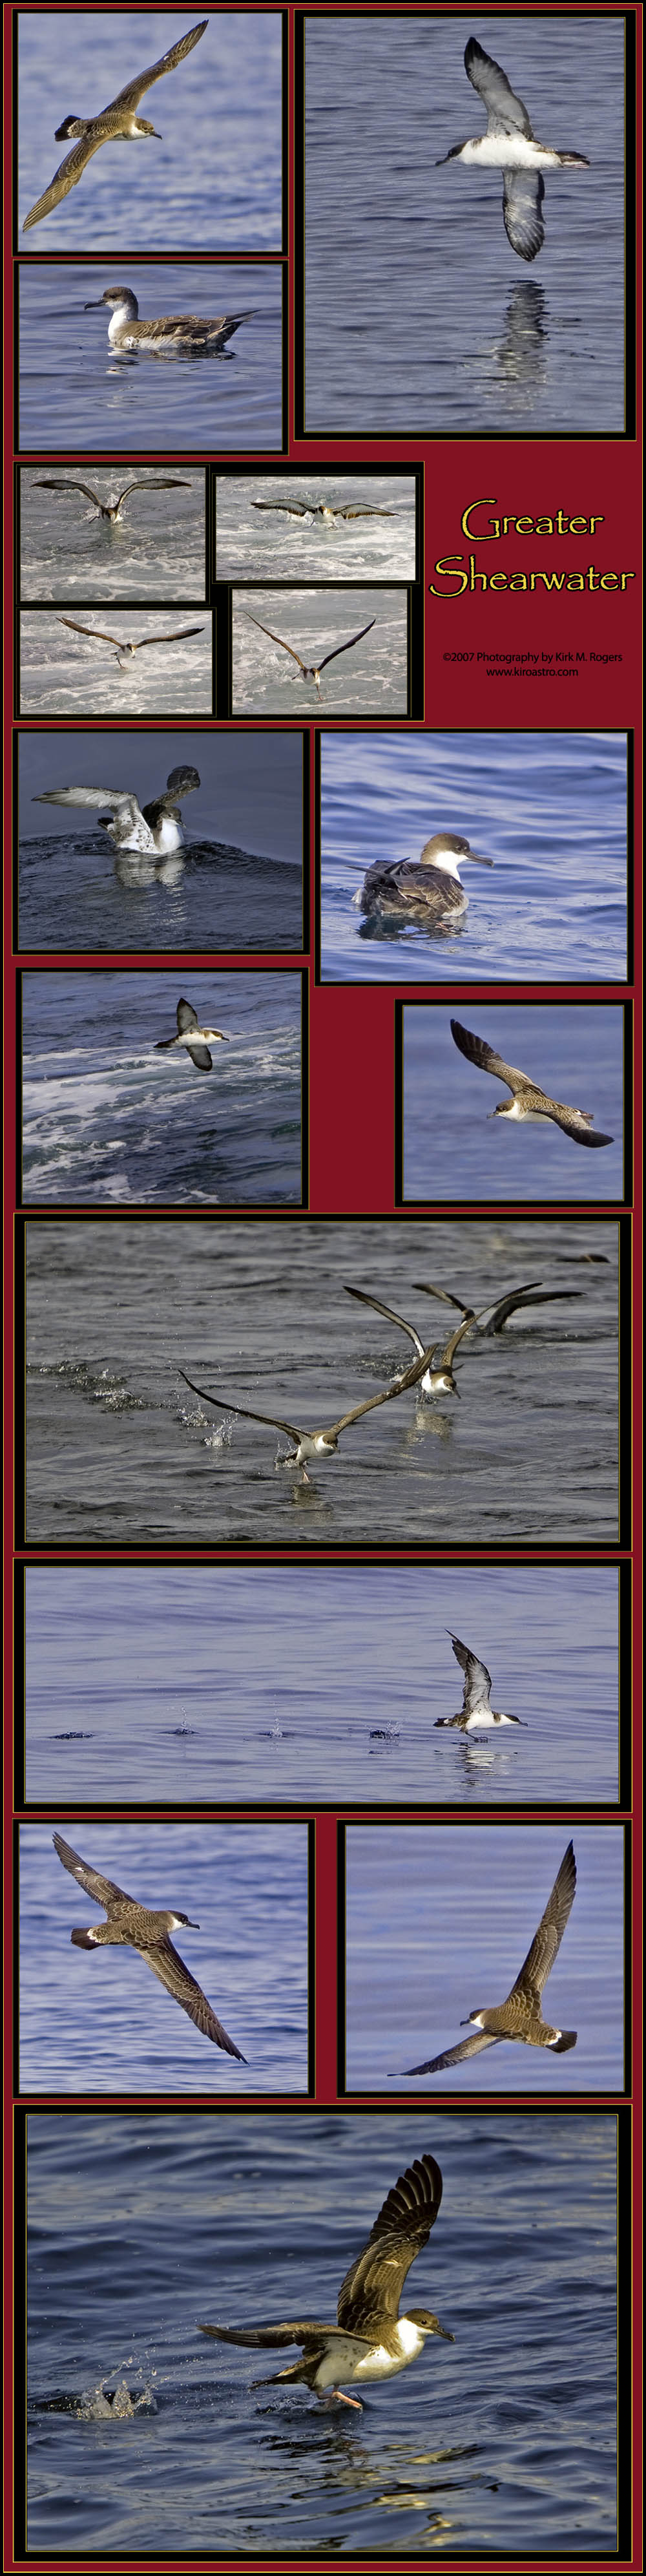 Greater Shearwater Image Template